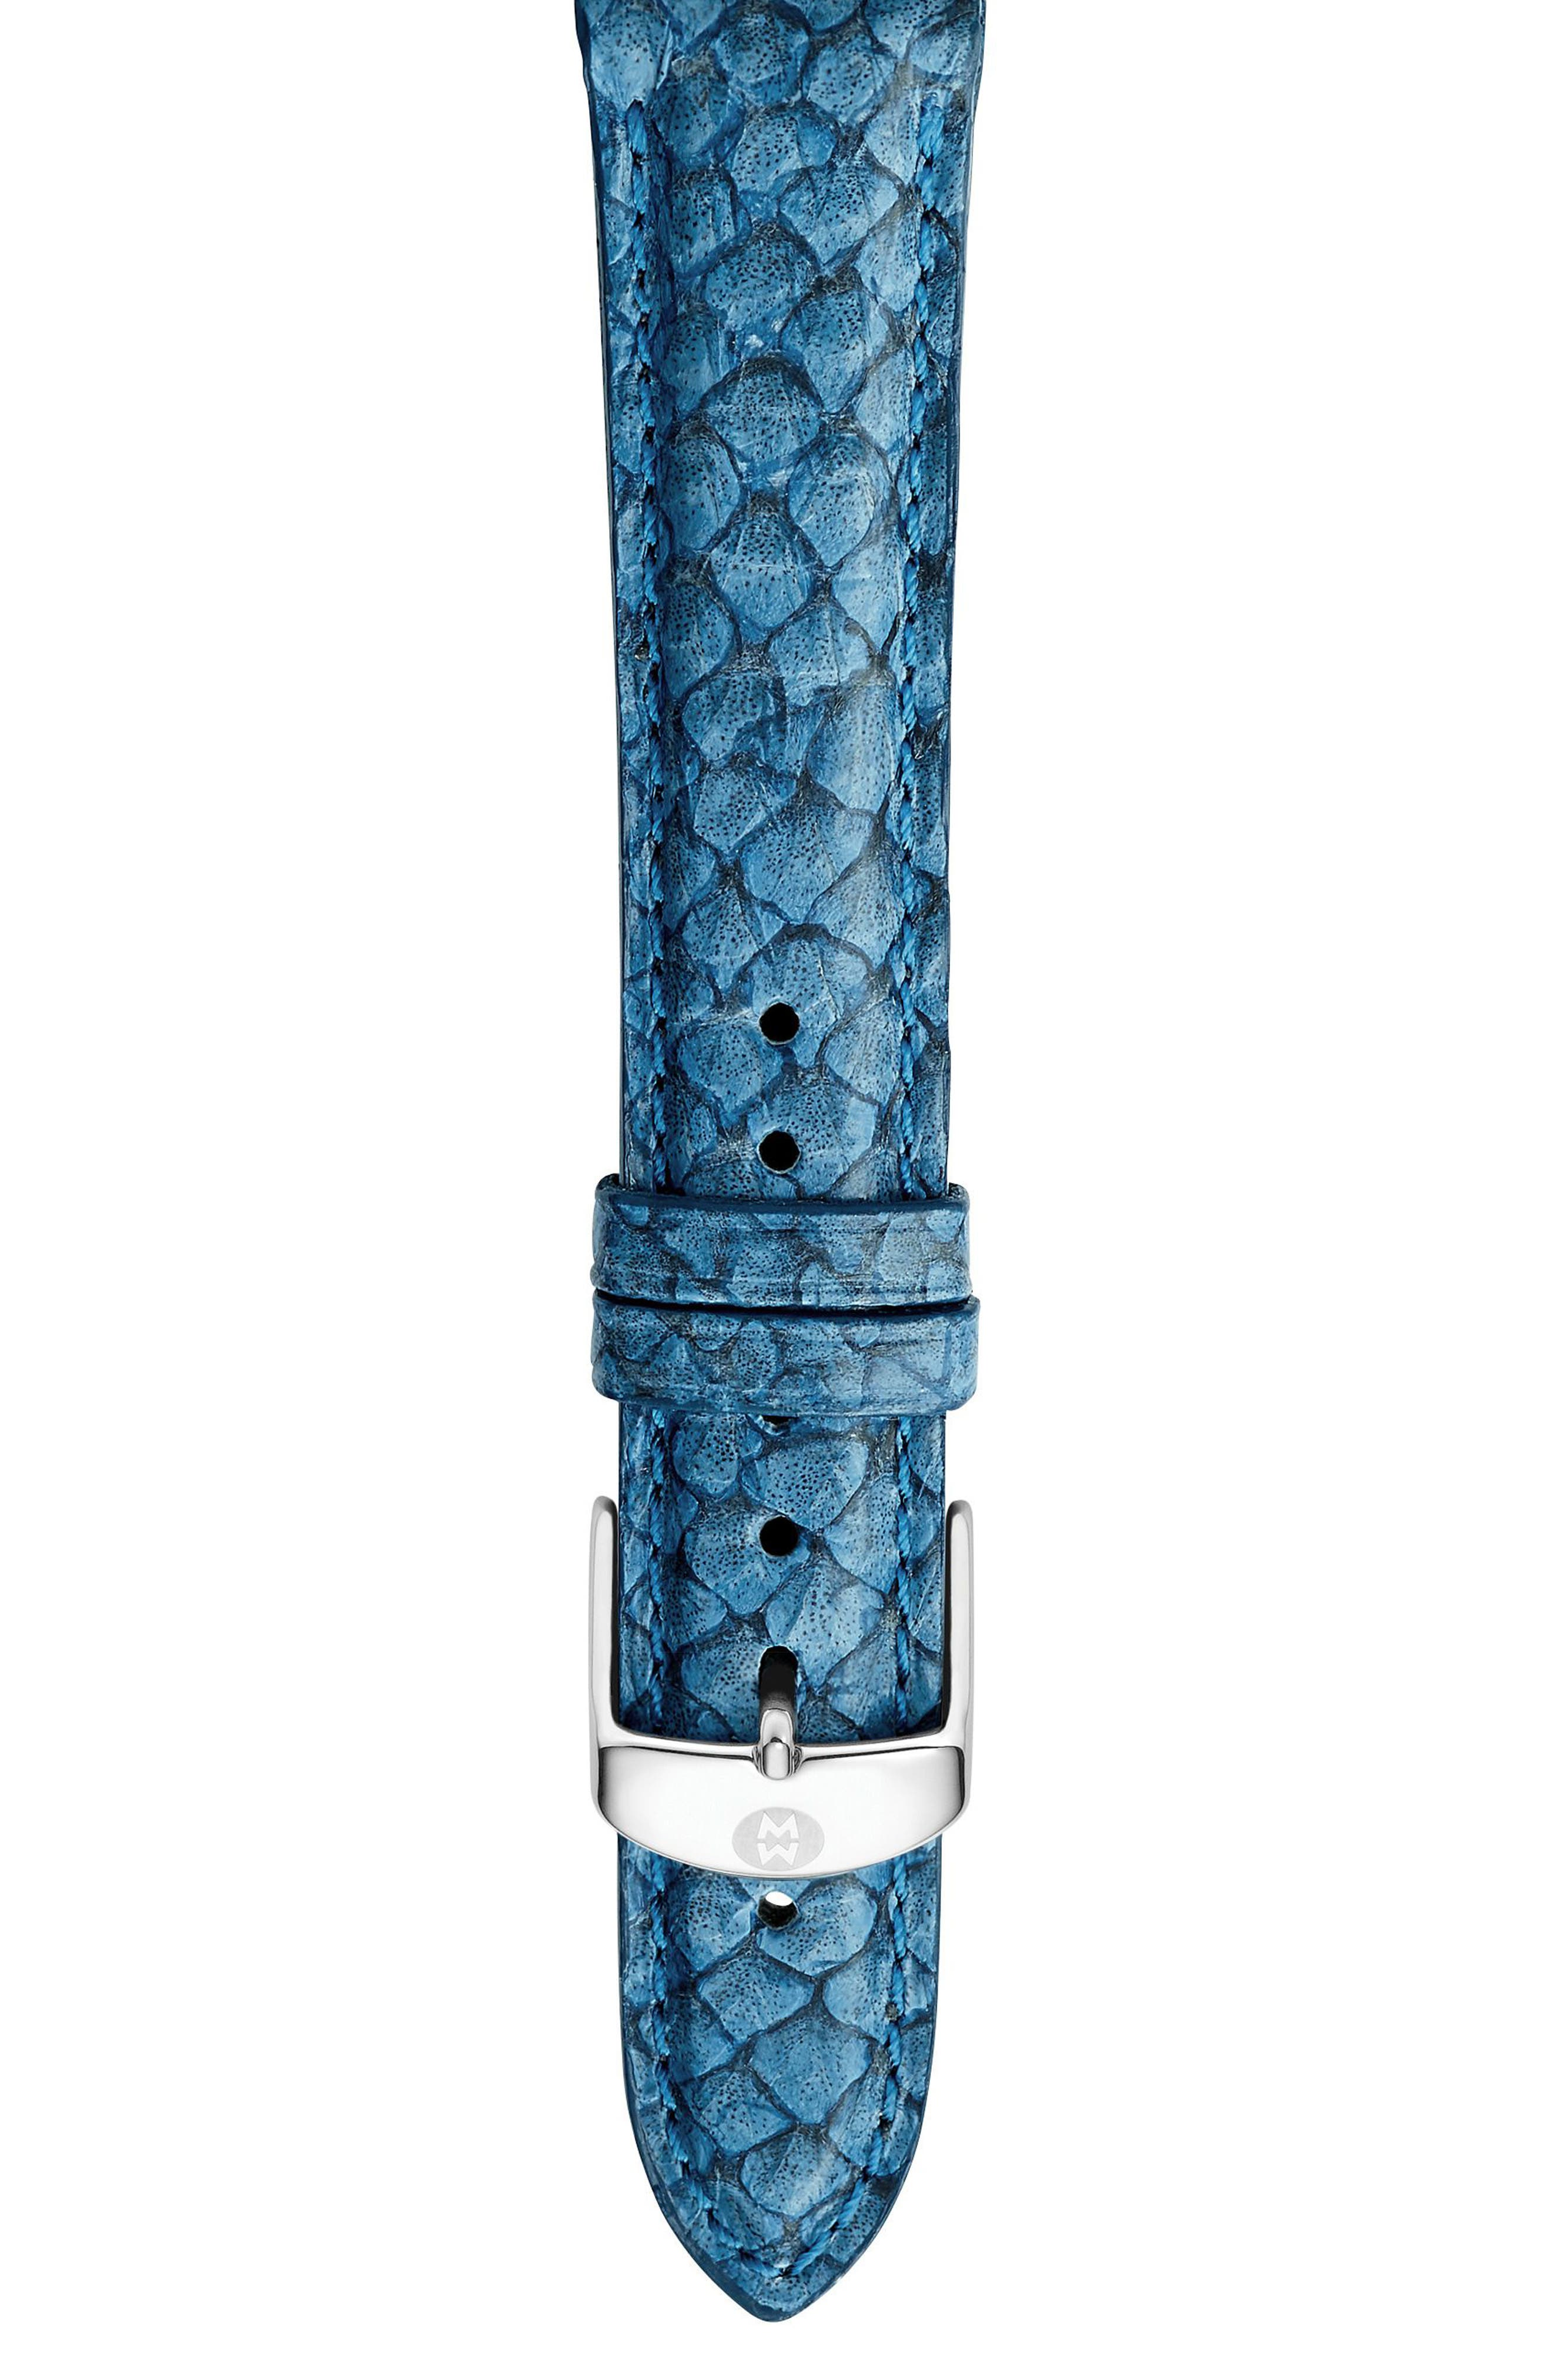 18mm Seamist Blue Fish Skin Watch Strap,                         Main,                         color, Seamist